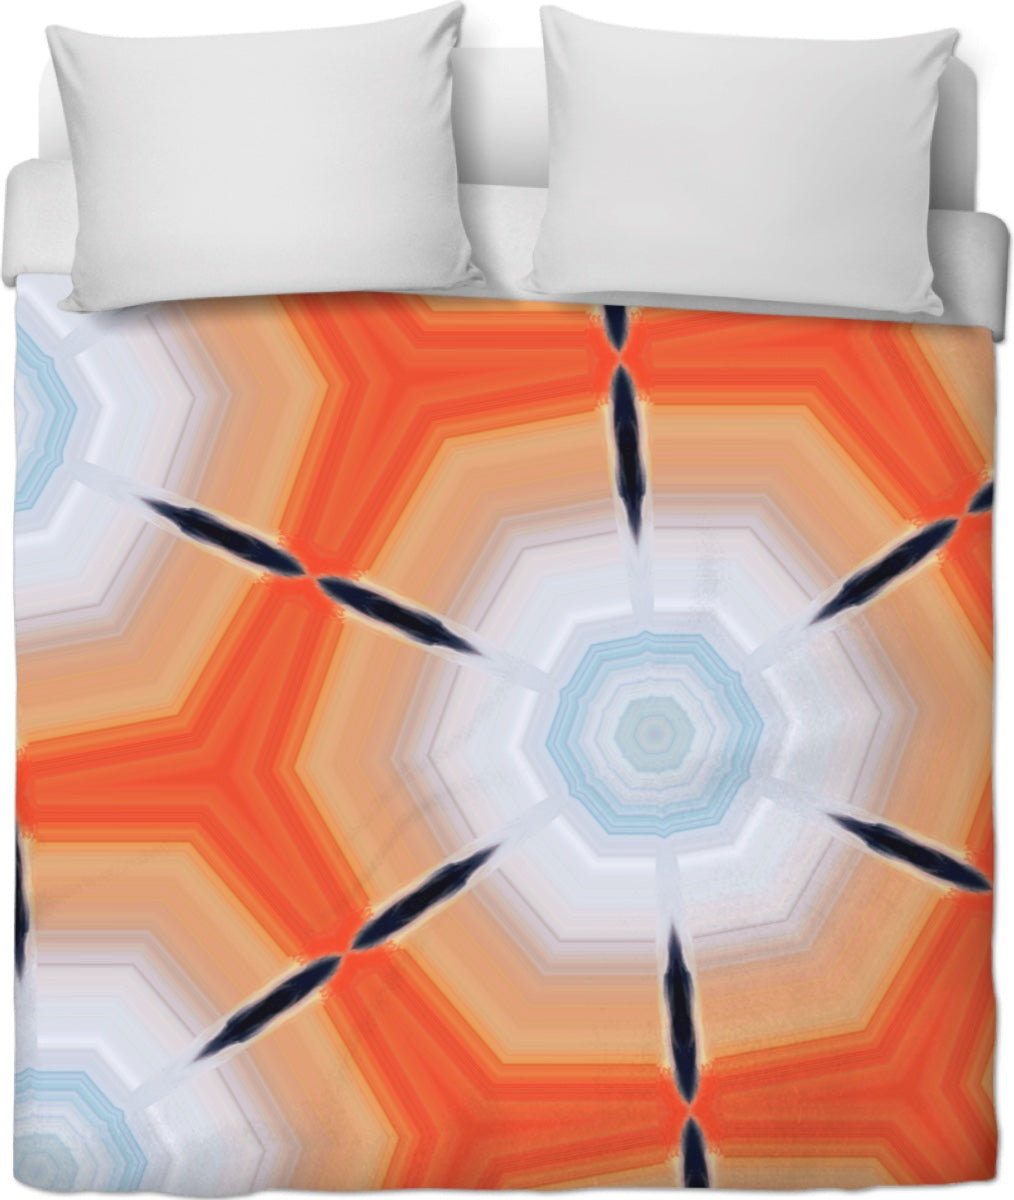 Duvet covers Pattern Collection182